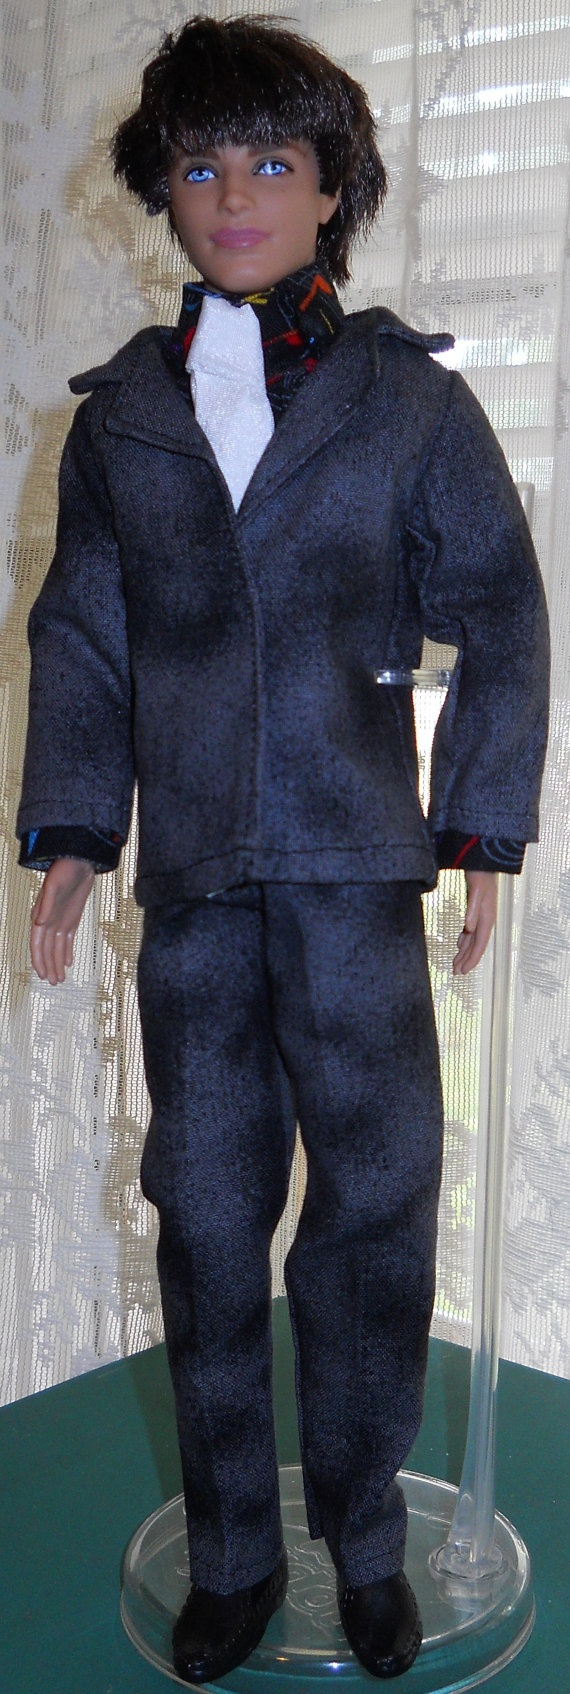 Handmade Ken 3 piece suit with tie by AuntieLousCrafts on Etsy, $10.00